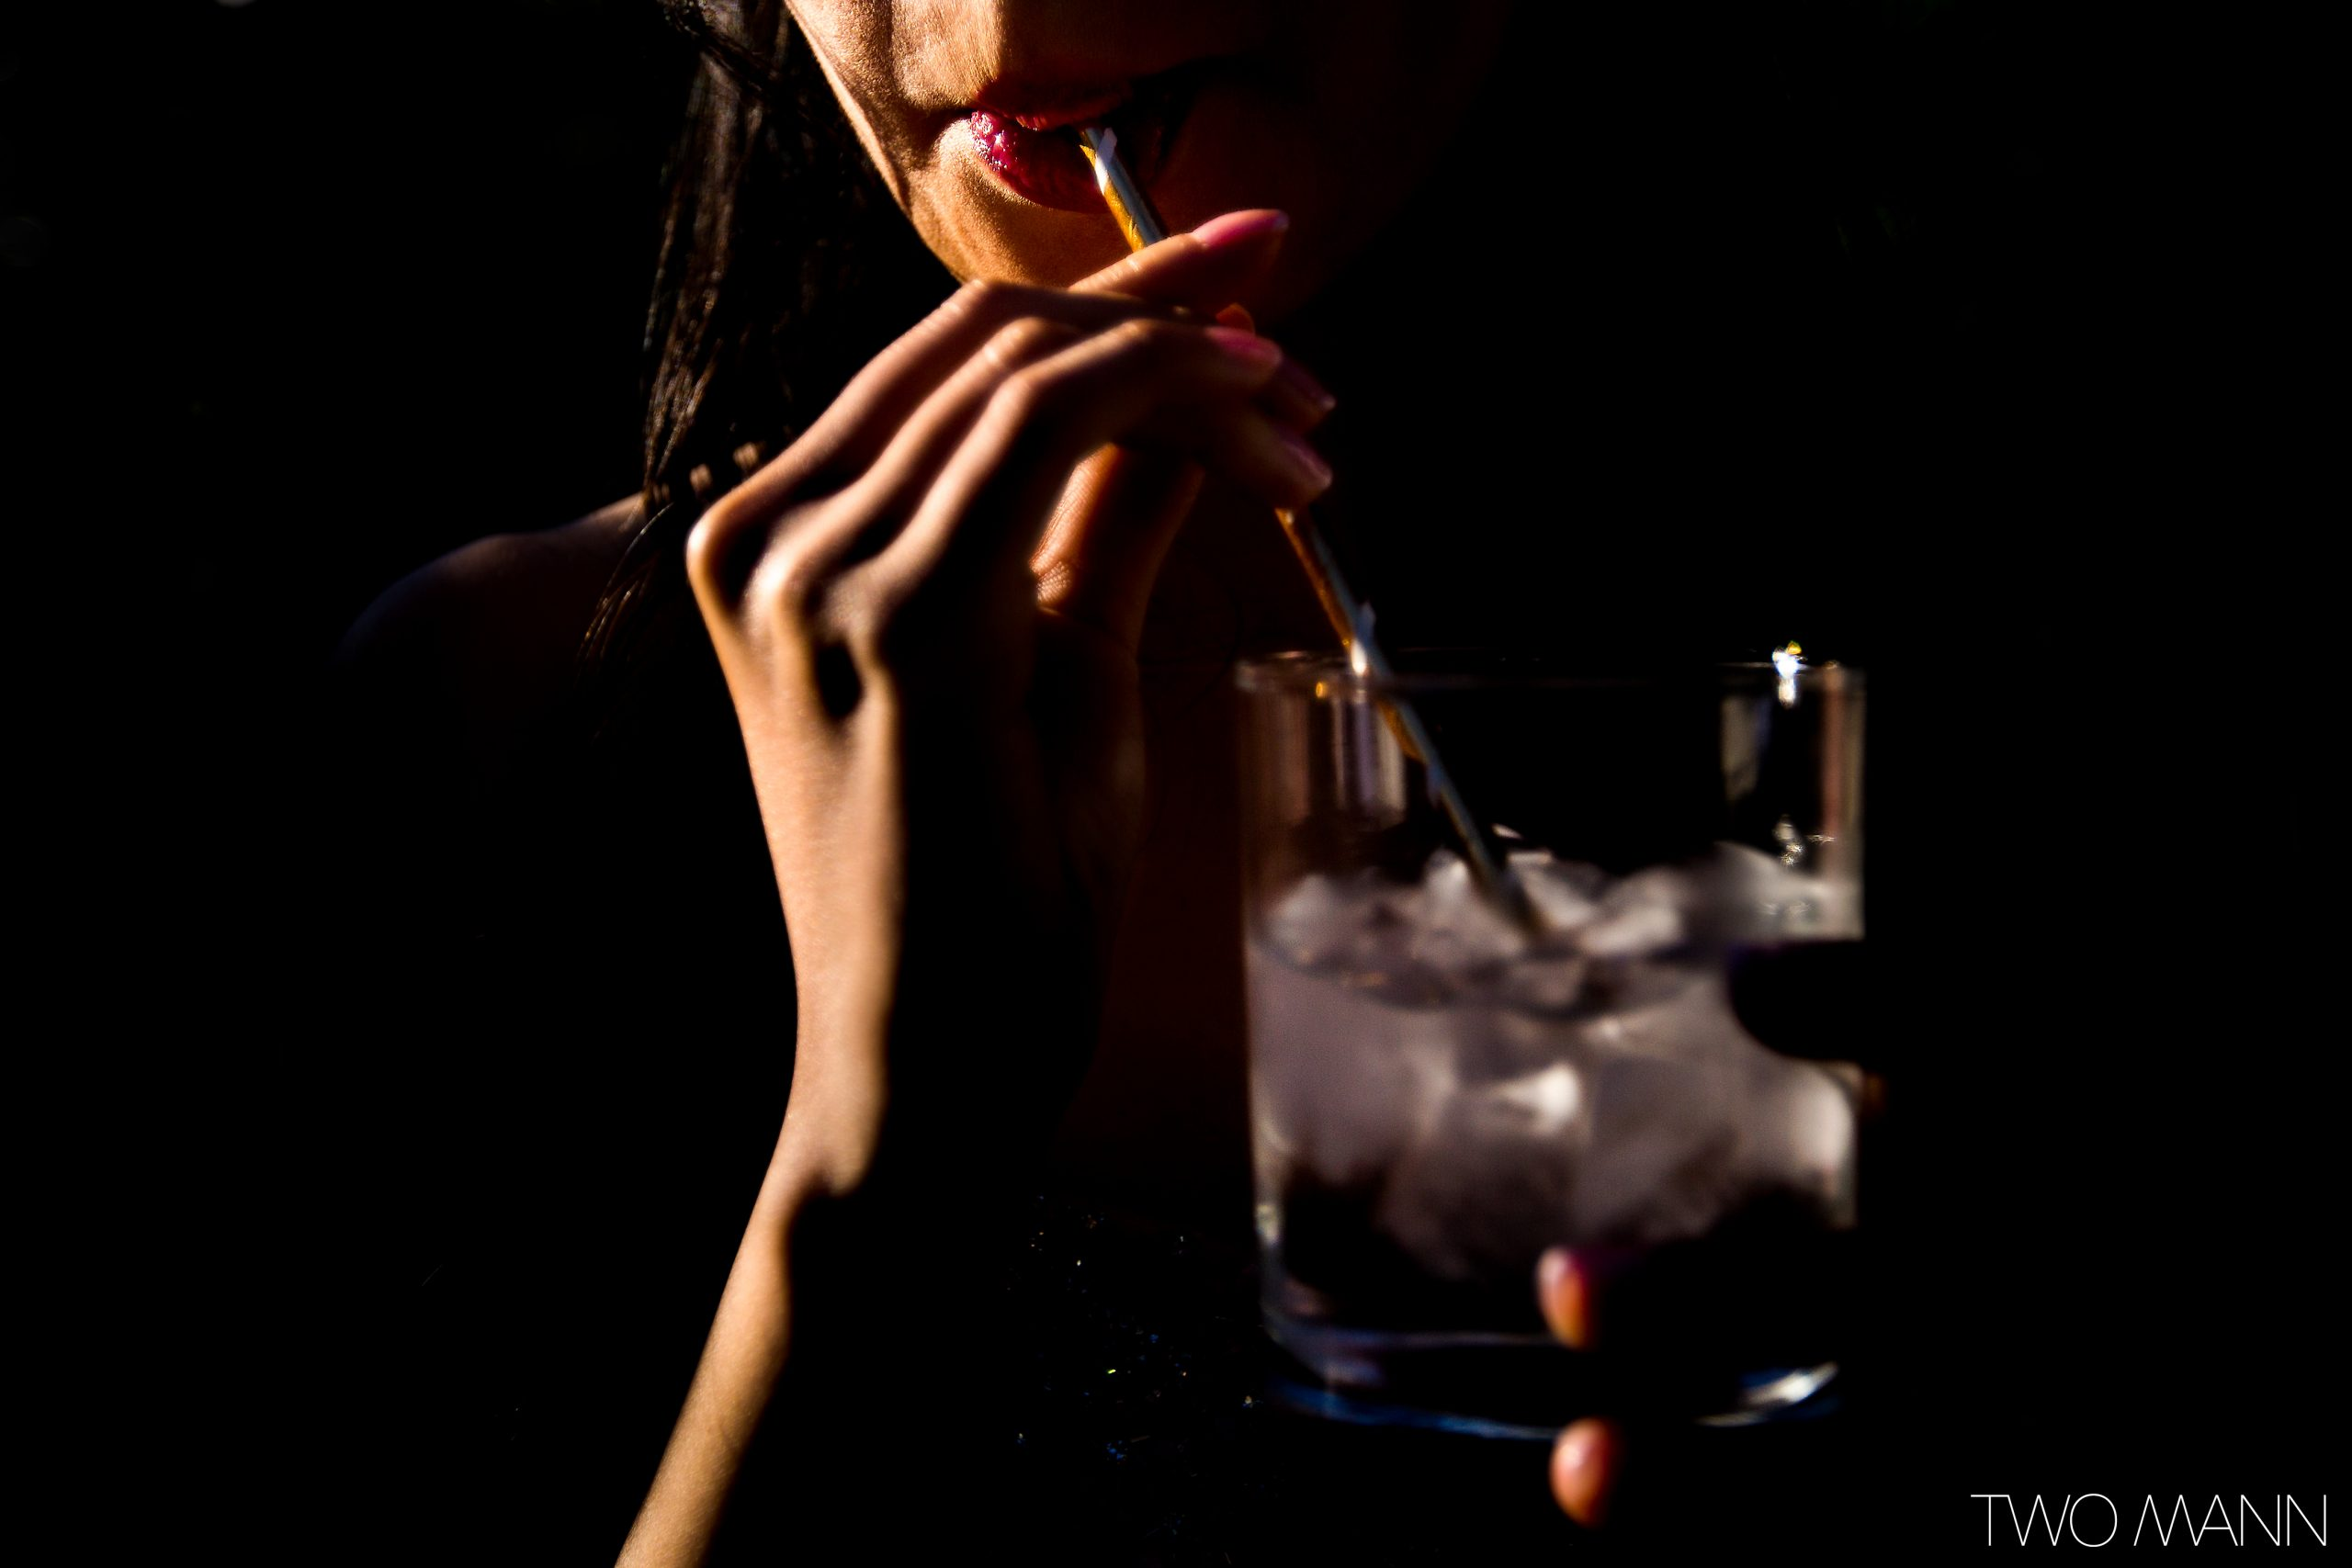 close up of bride sipping cocktail through a straw in dramatic light